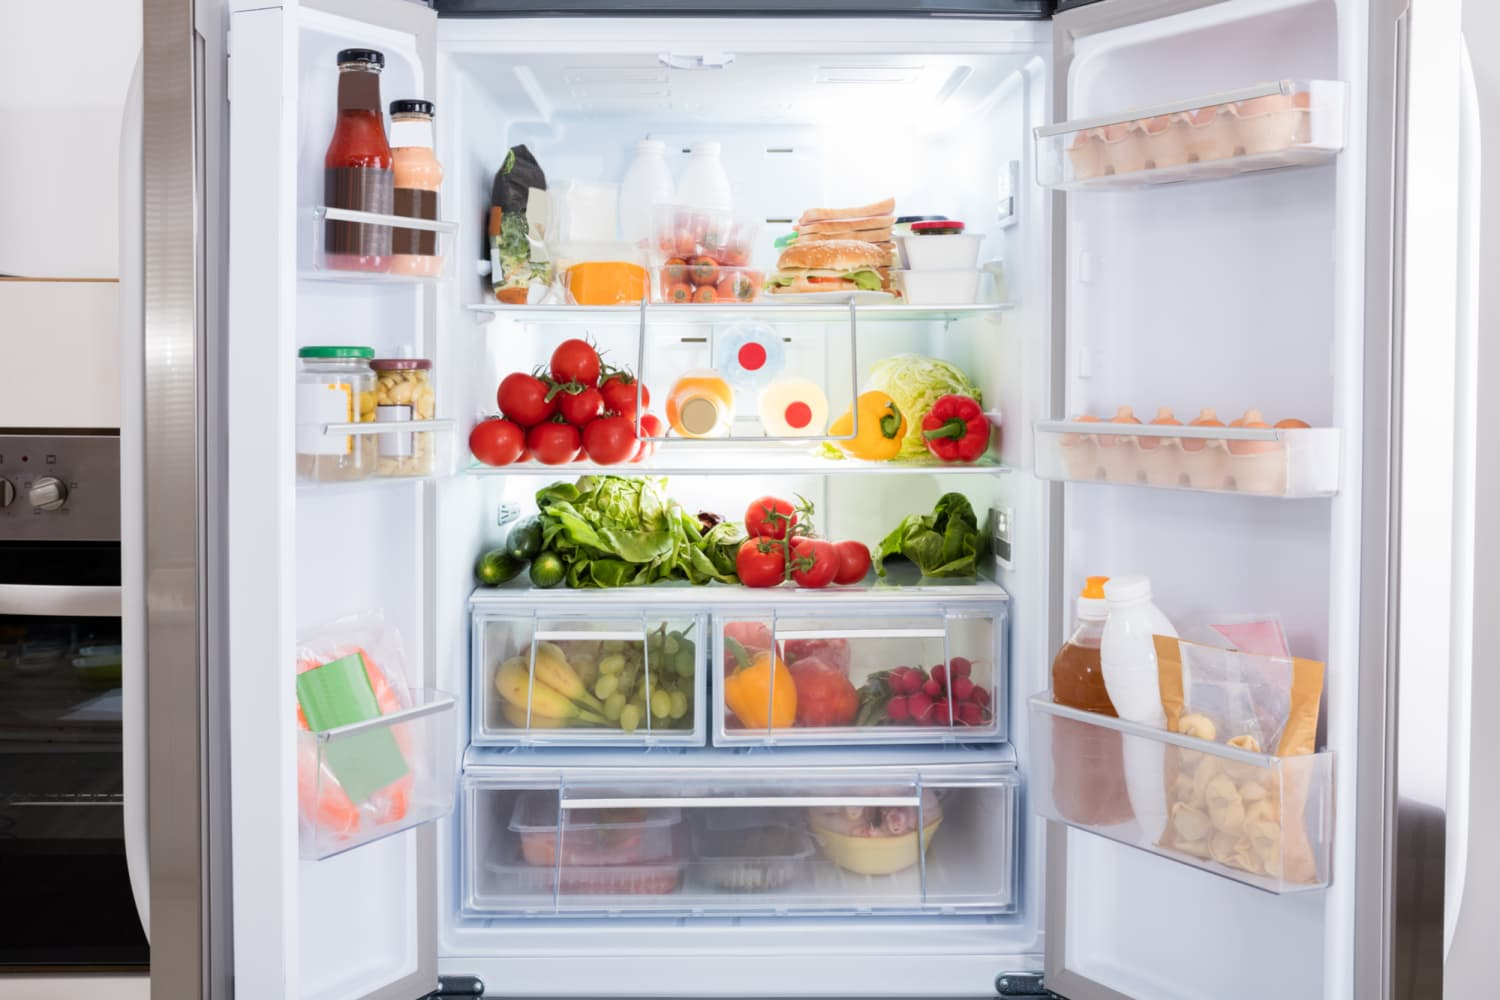 I Discovered a Wildly Simple Way to Get the Inside of Your Fridge Sparkling Clean